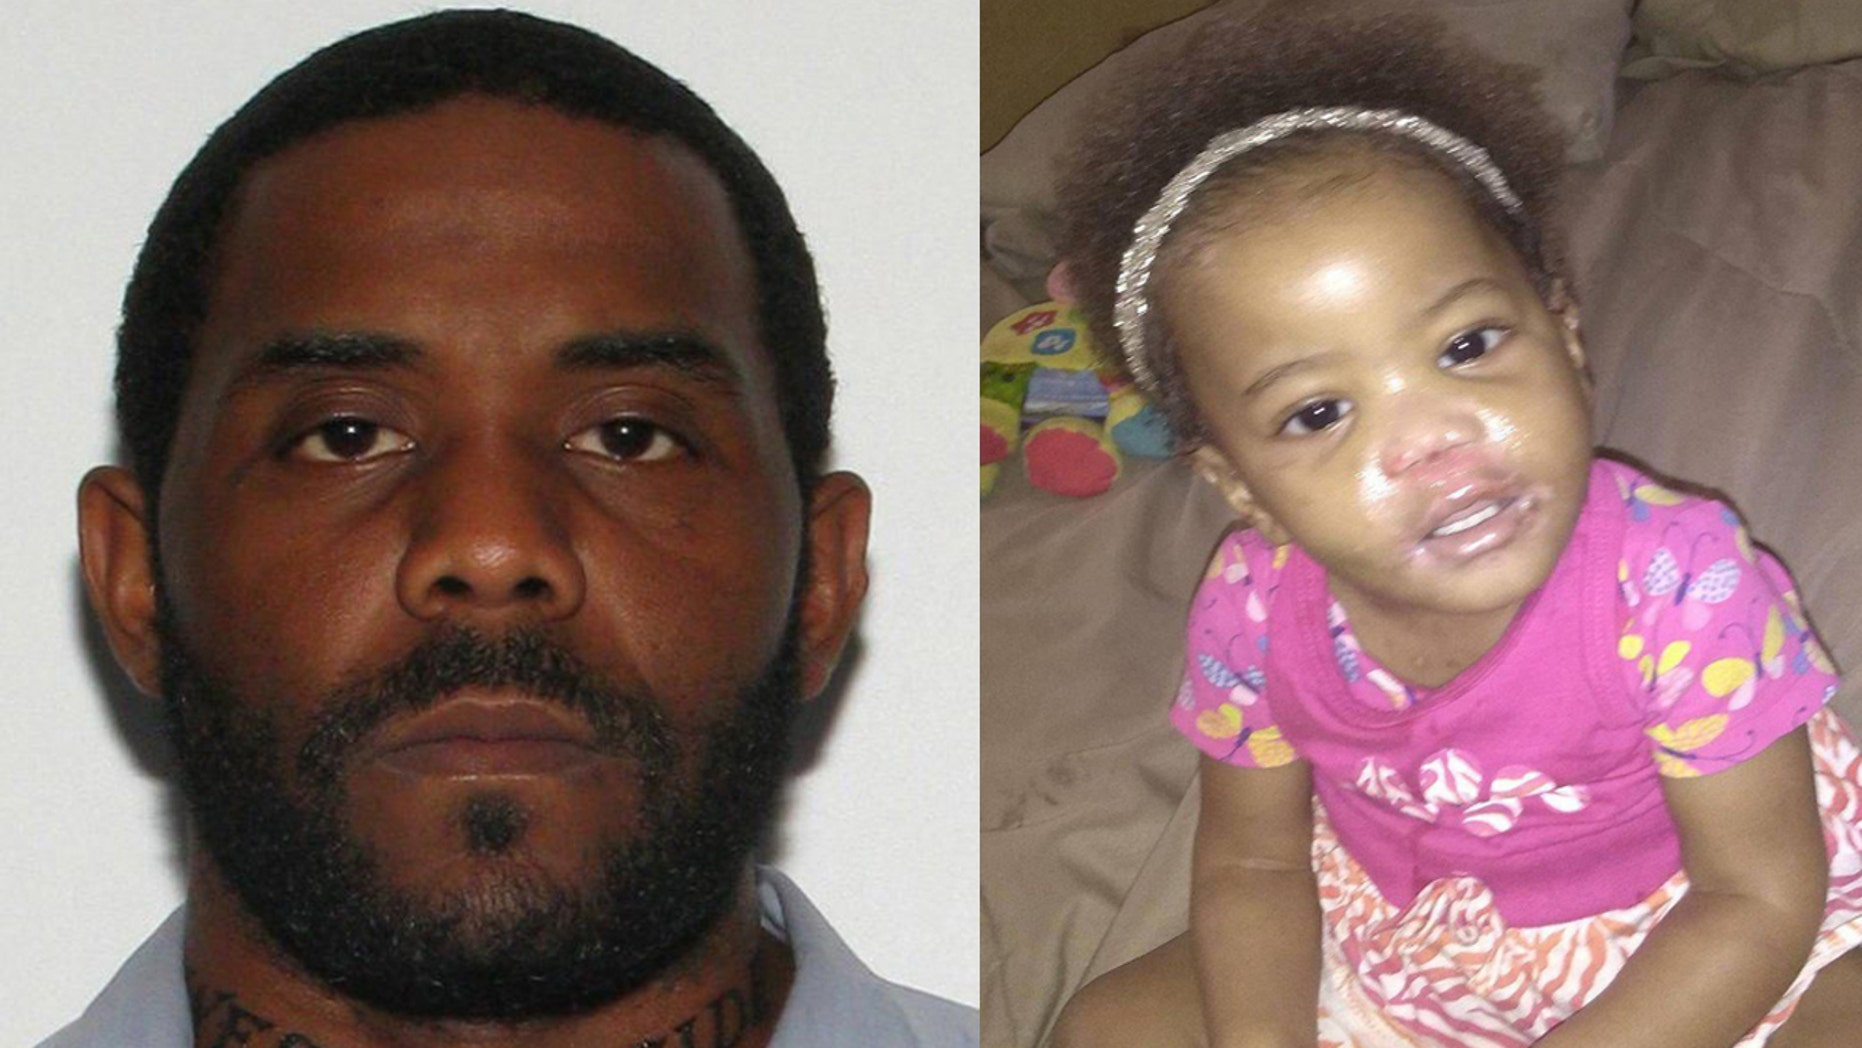 Travis Plummer, 37, appeared in a New Jersey courtroom Friday, charged with desecrating the remains of 23-month-old daughter Te'Myah Layauna Plummer, authorities said.